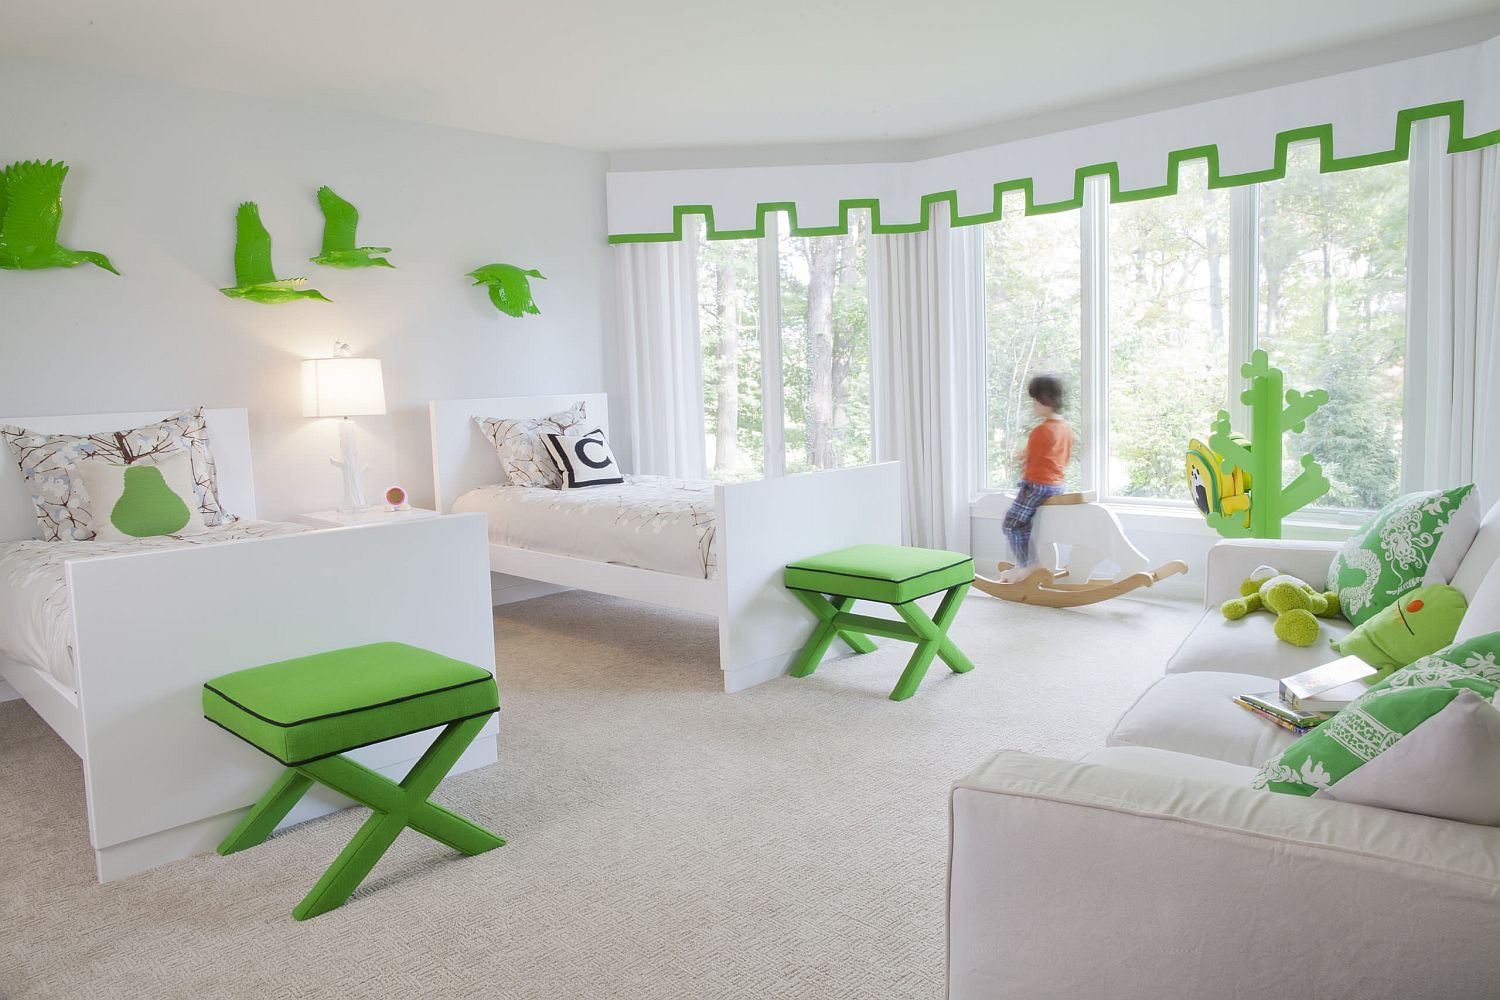 Fun and classy way to bring green to the all-white kids' bedroom